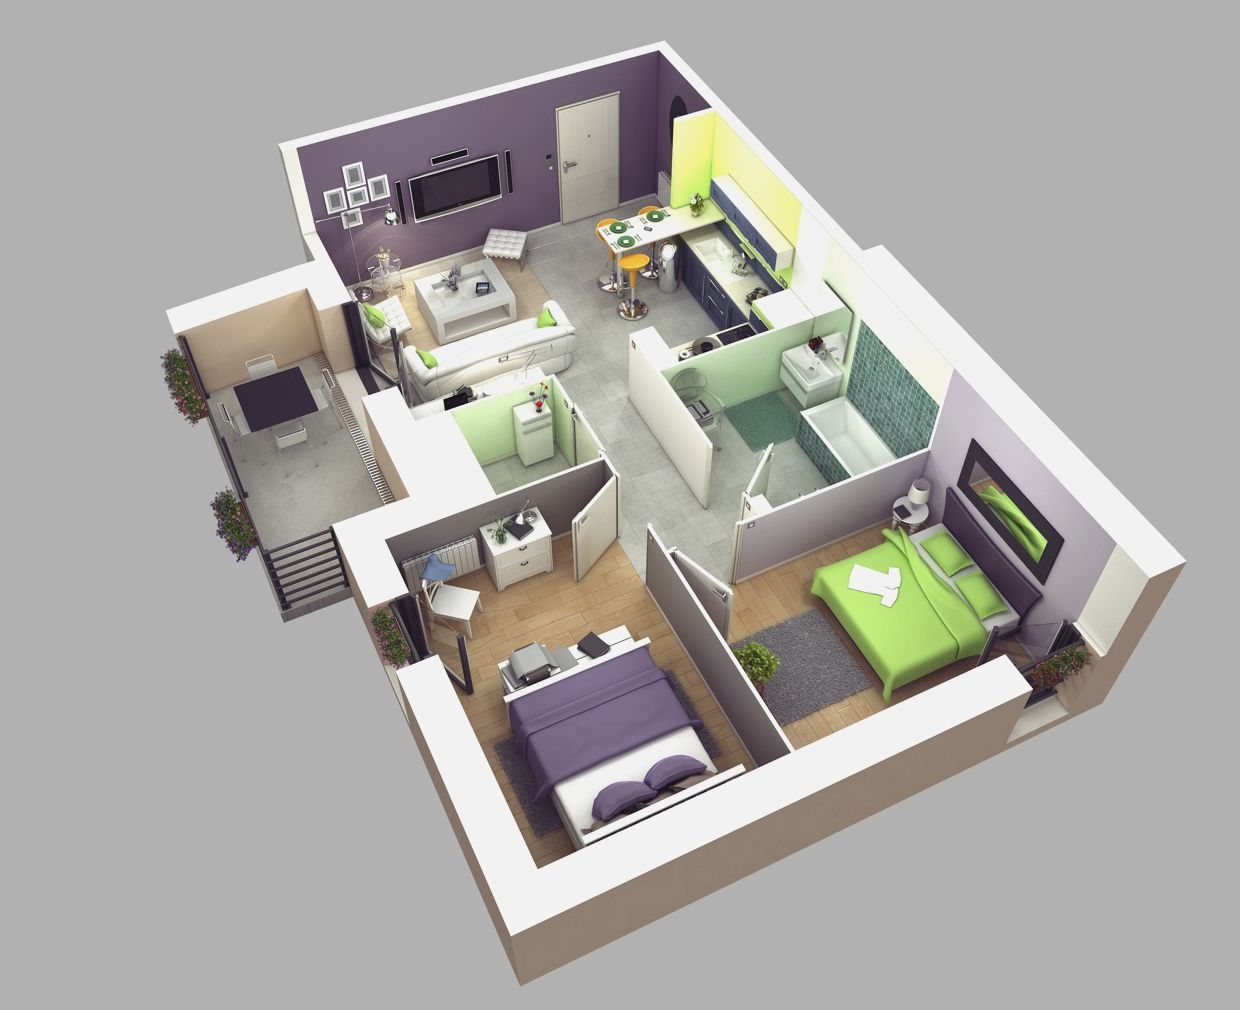 1 bedroom house plans 3d just the two of us apartment for I bedroom house plans